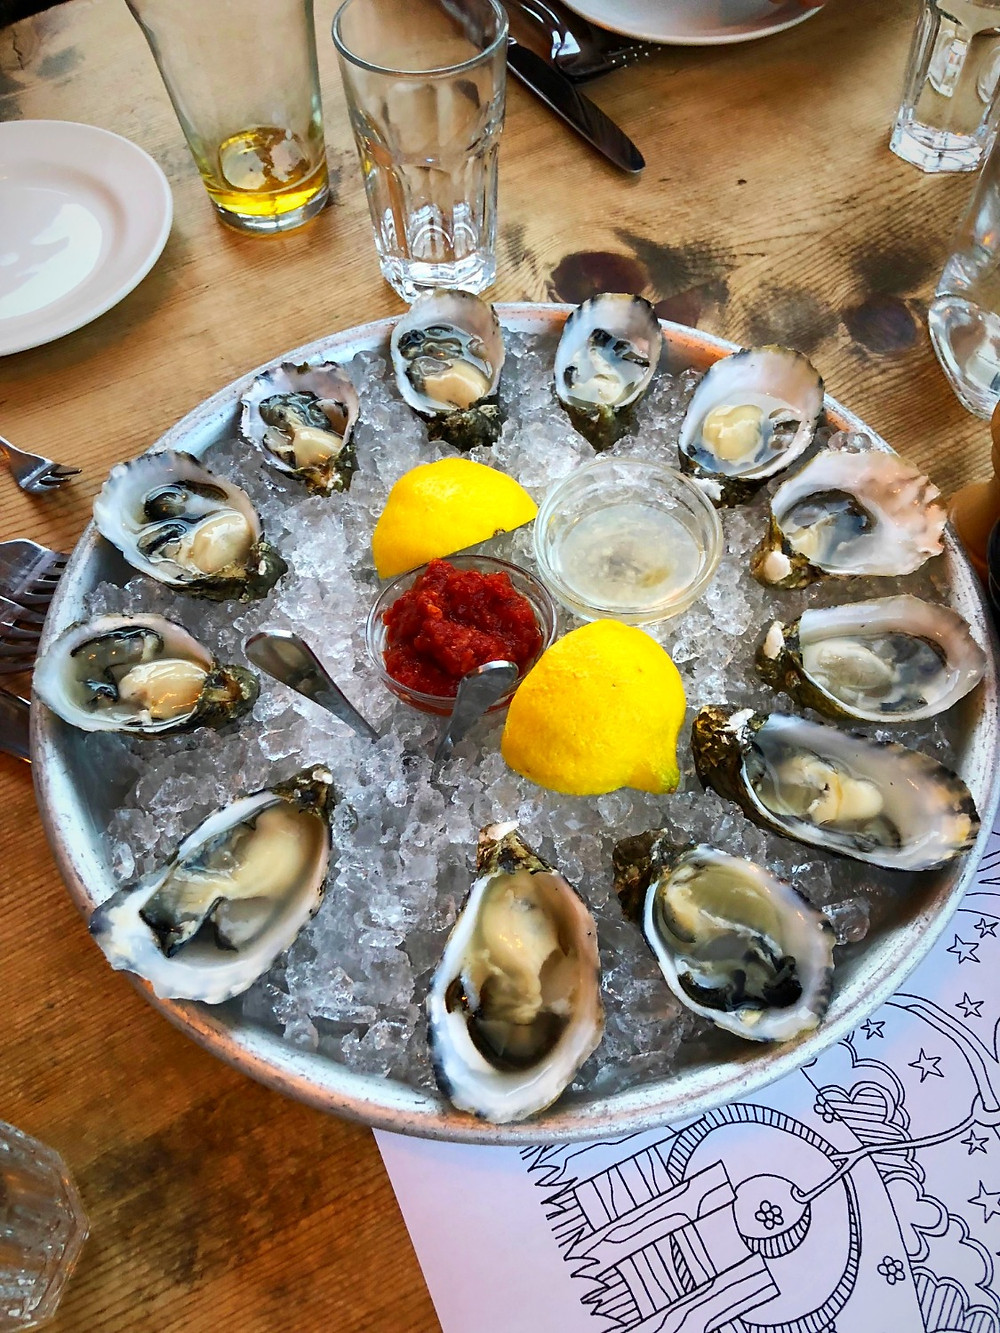 Denver with kids, Red Rocks Park, hiking with kids, family travel, Colorado with kids, FTW, kids in arcades, 16th Street Mall with kids, Denver with kids, oysters in Colorado, The Kitchen Denver